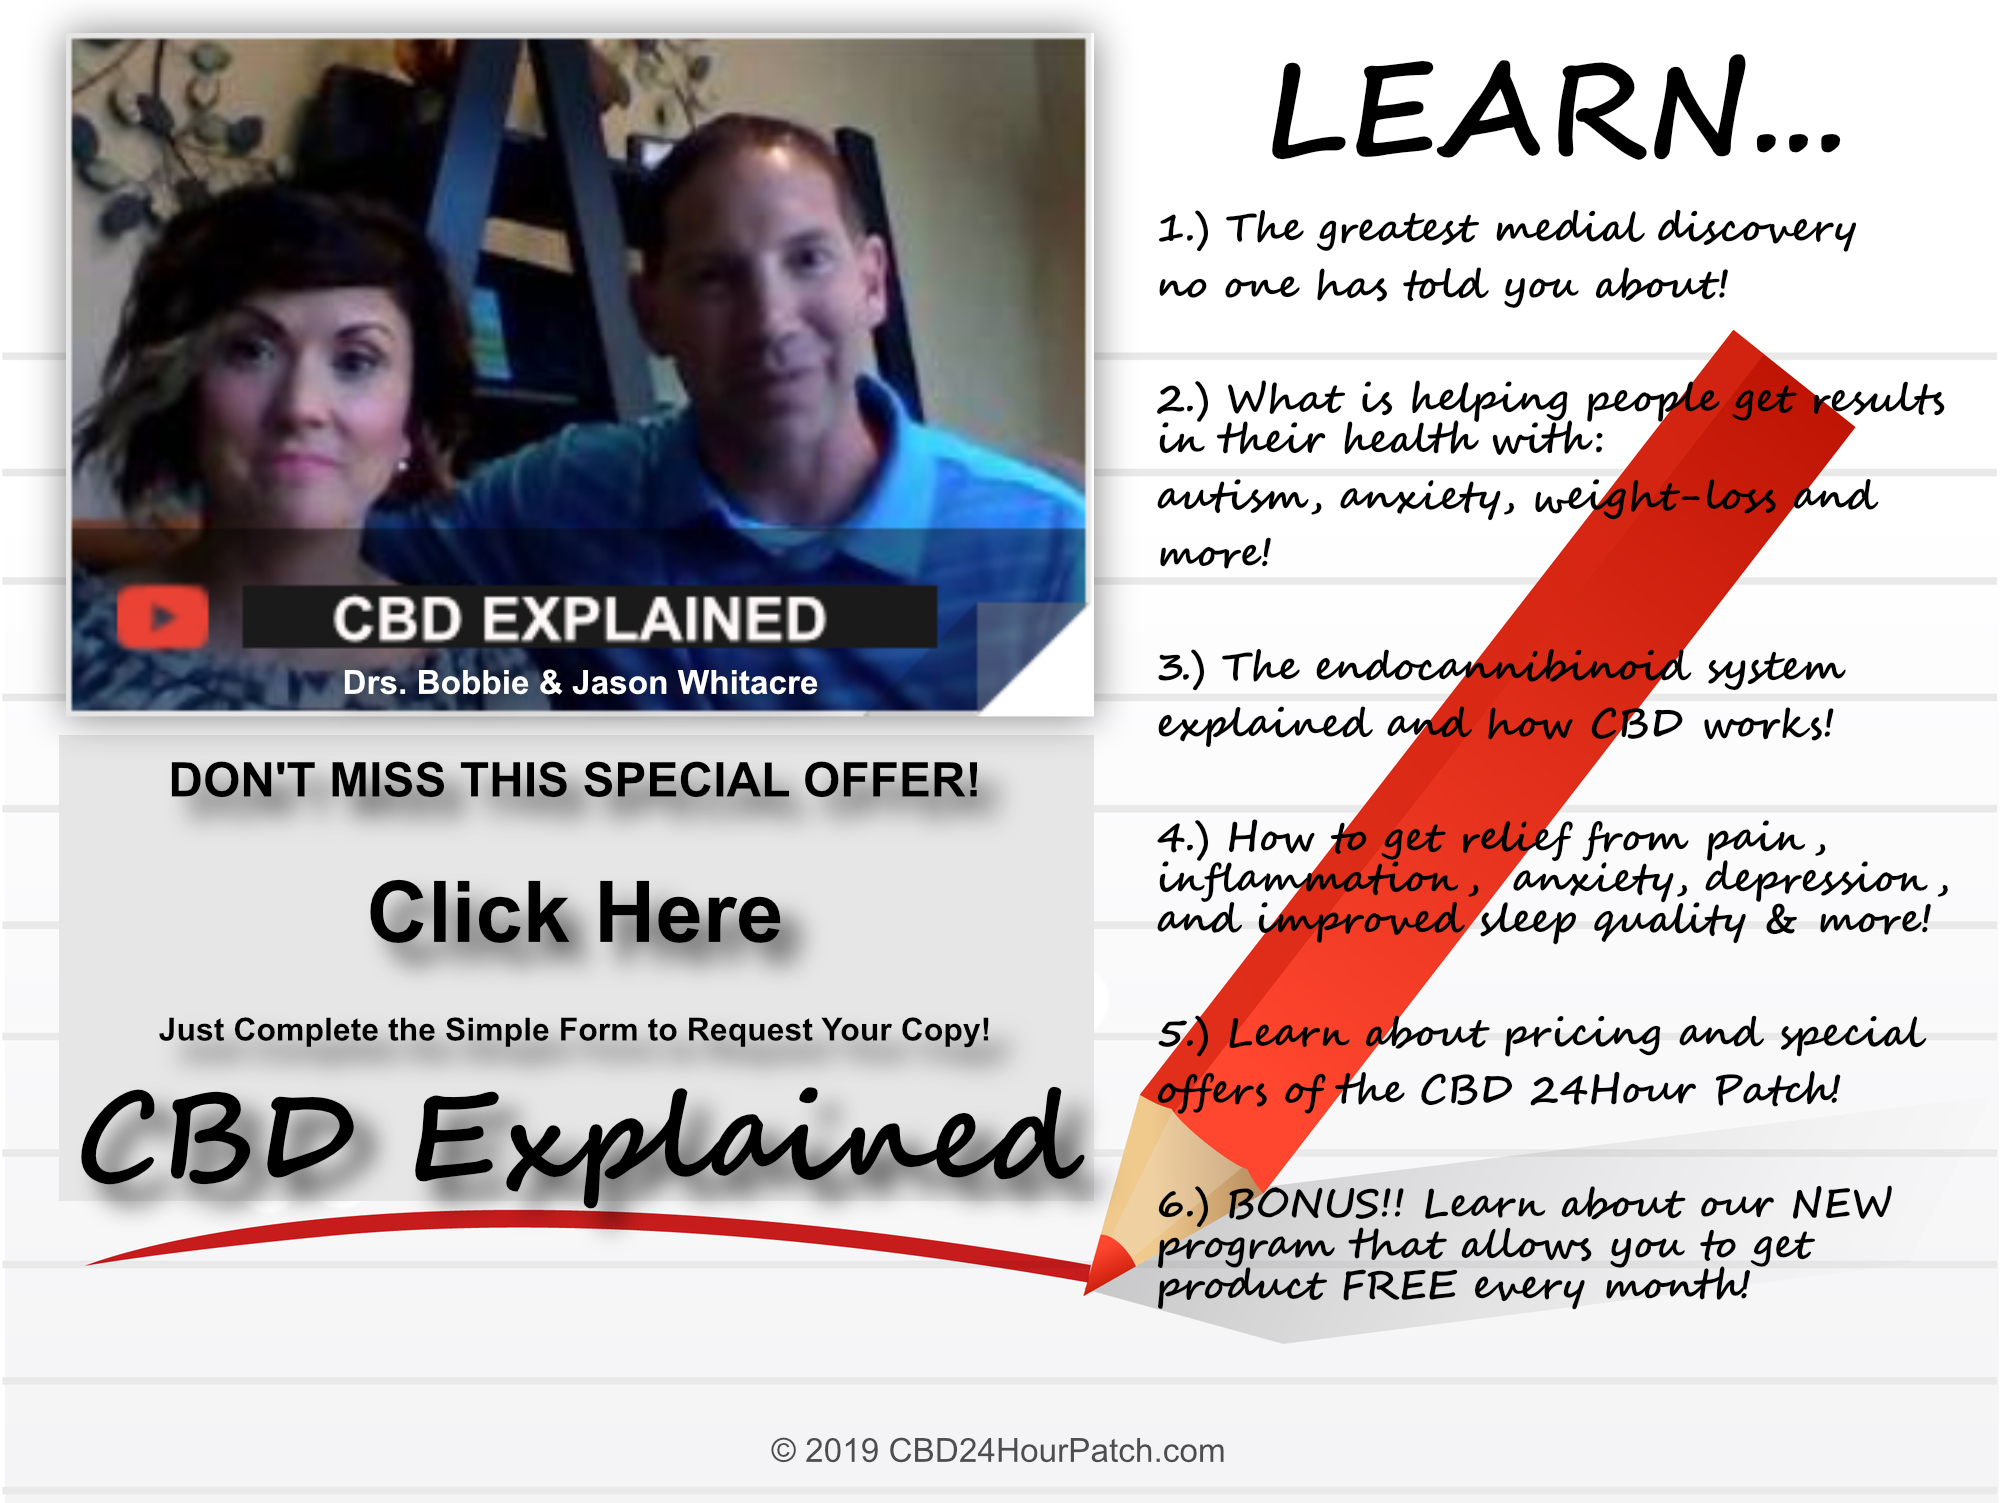 Learn all about CBD by Drs. Bobbie & Jason Whitacre